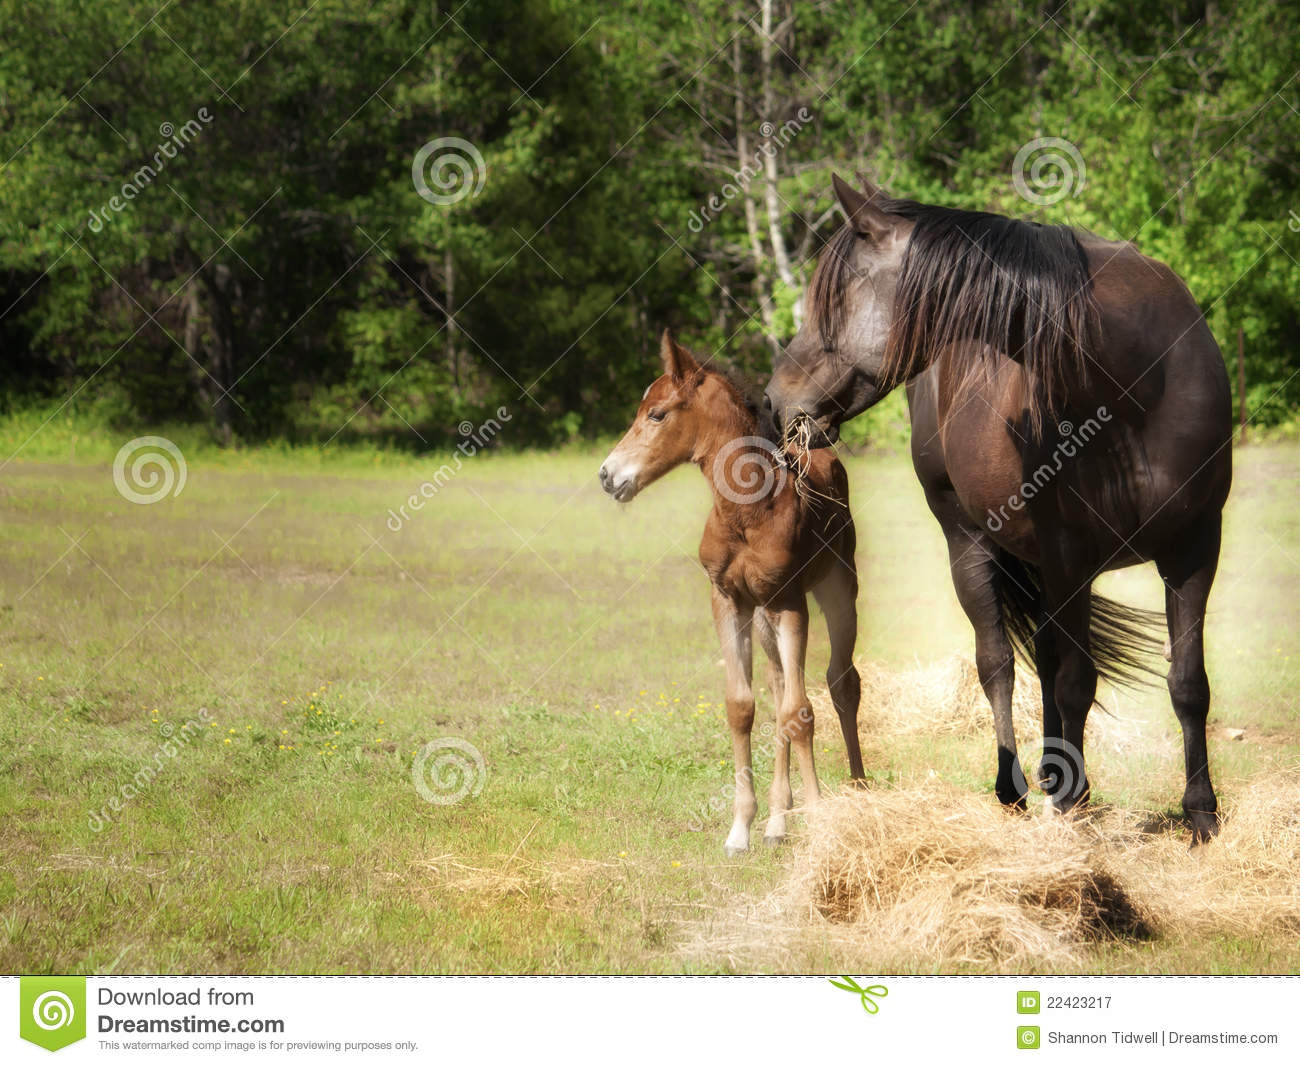 5 512 Mother Baby Horse Photos Free Royalty Free Stock Photos From Dreamstime